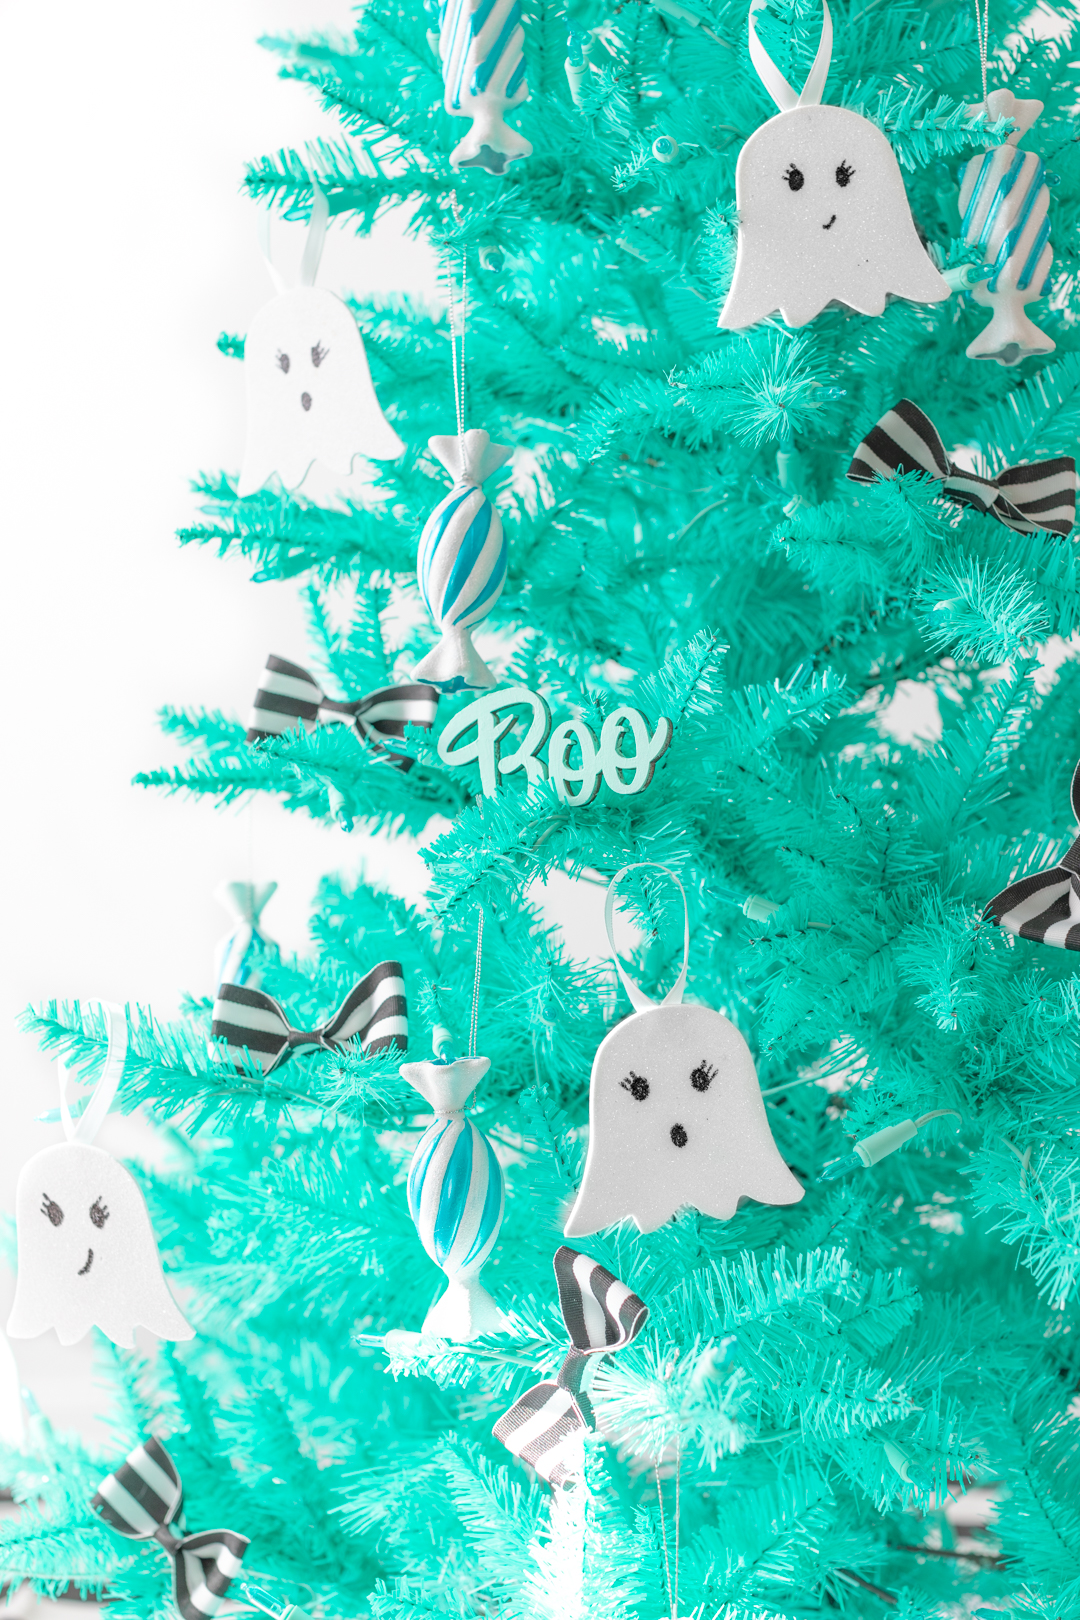 teal christmas tree decorated for halloween with ghost ornaments and candy ornaments